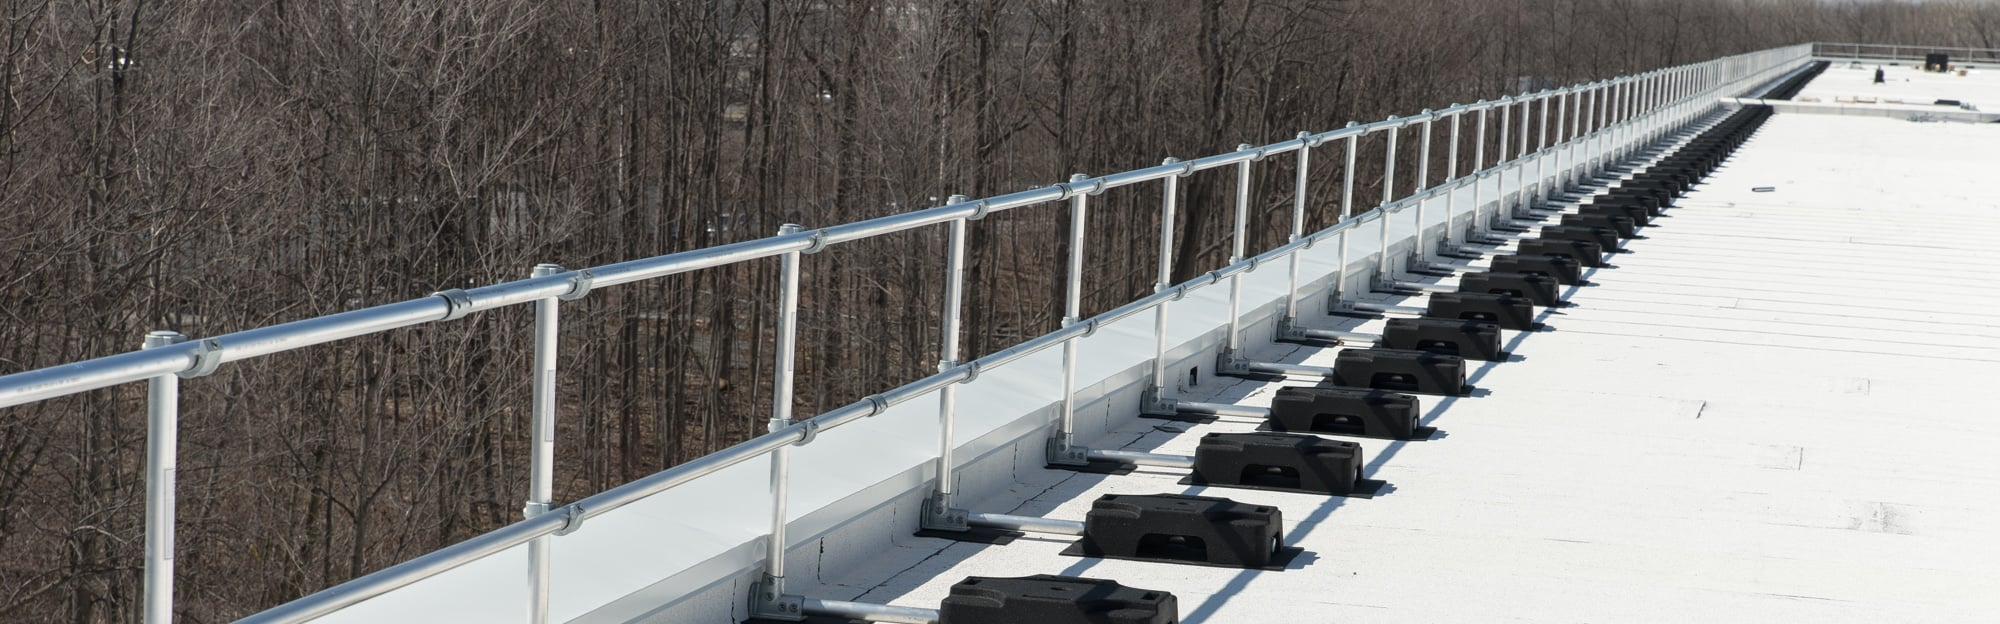 Freestanding guardrail, fall protecton, rooftop protection, roof protection railing